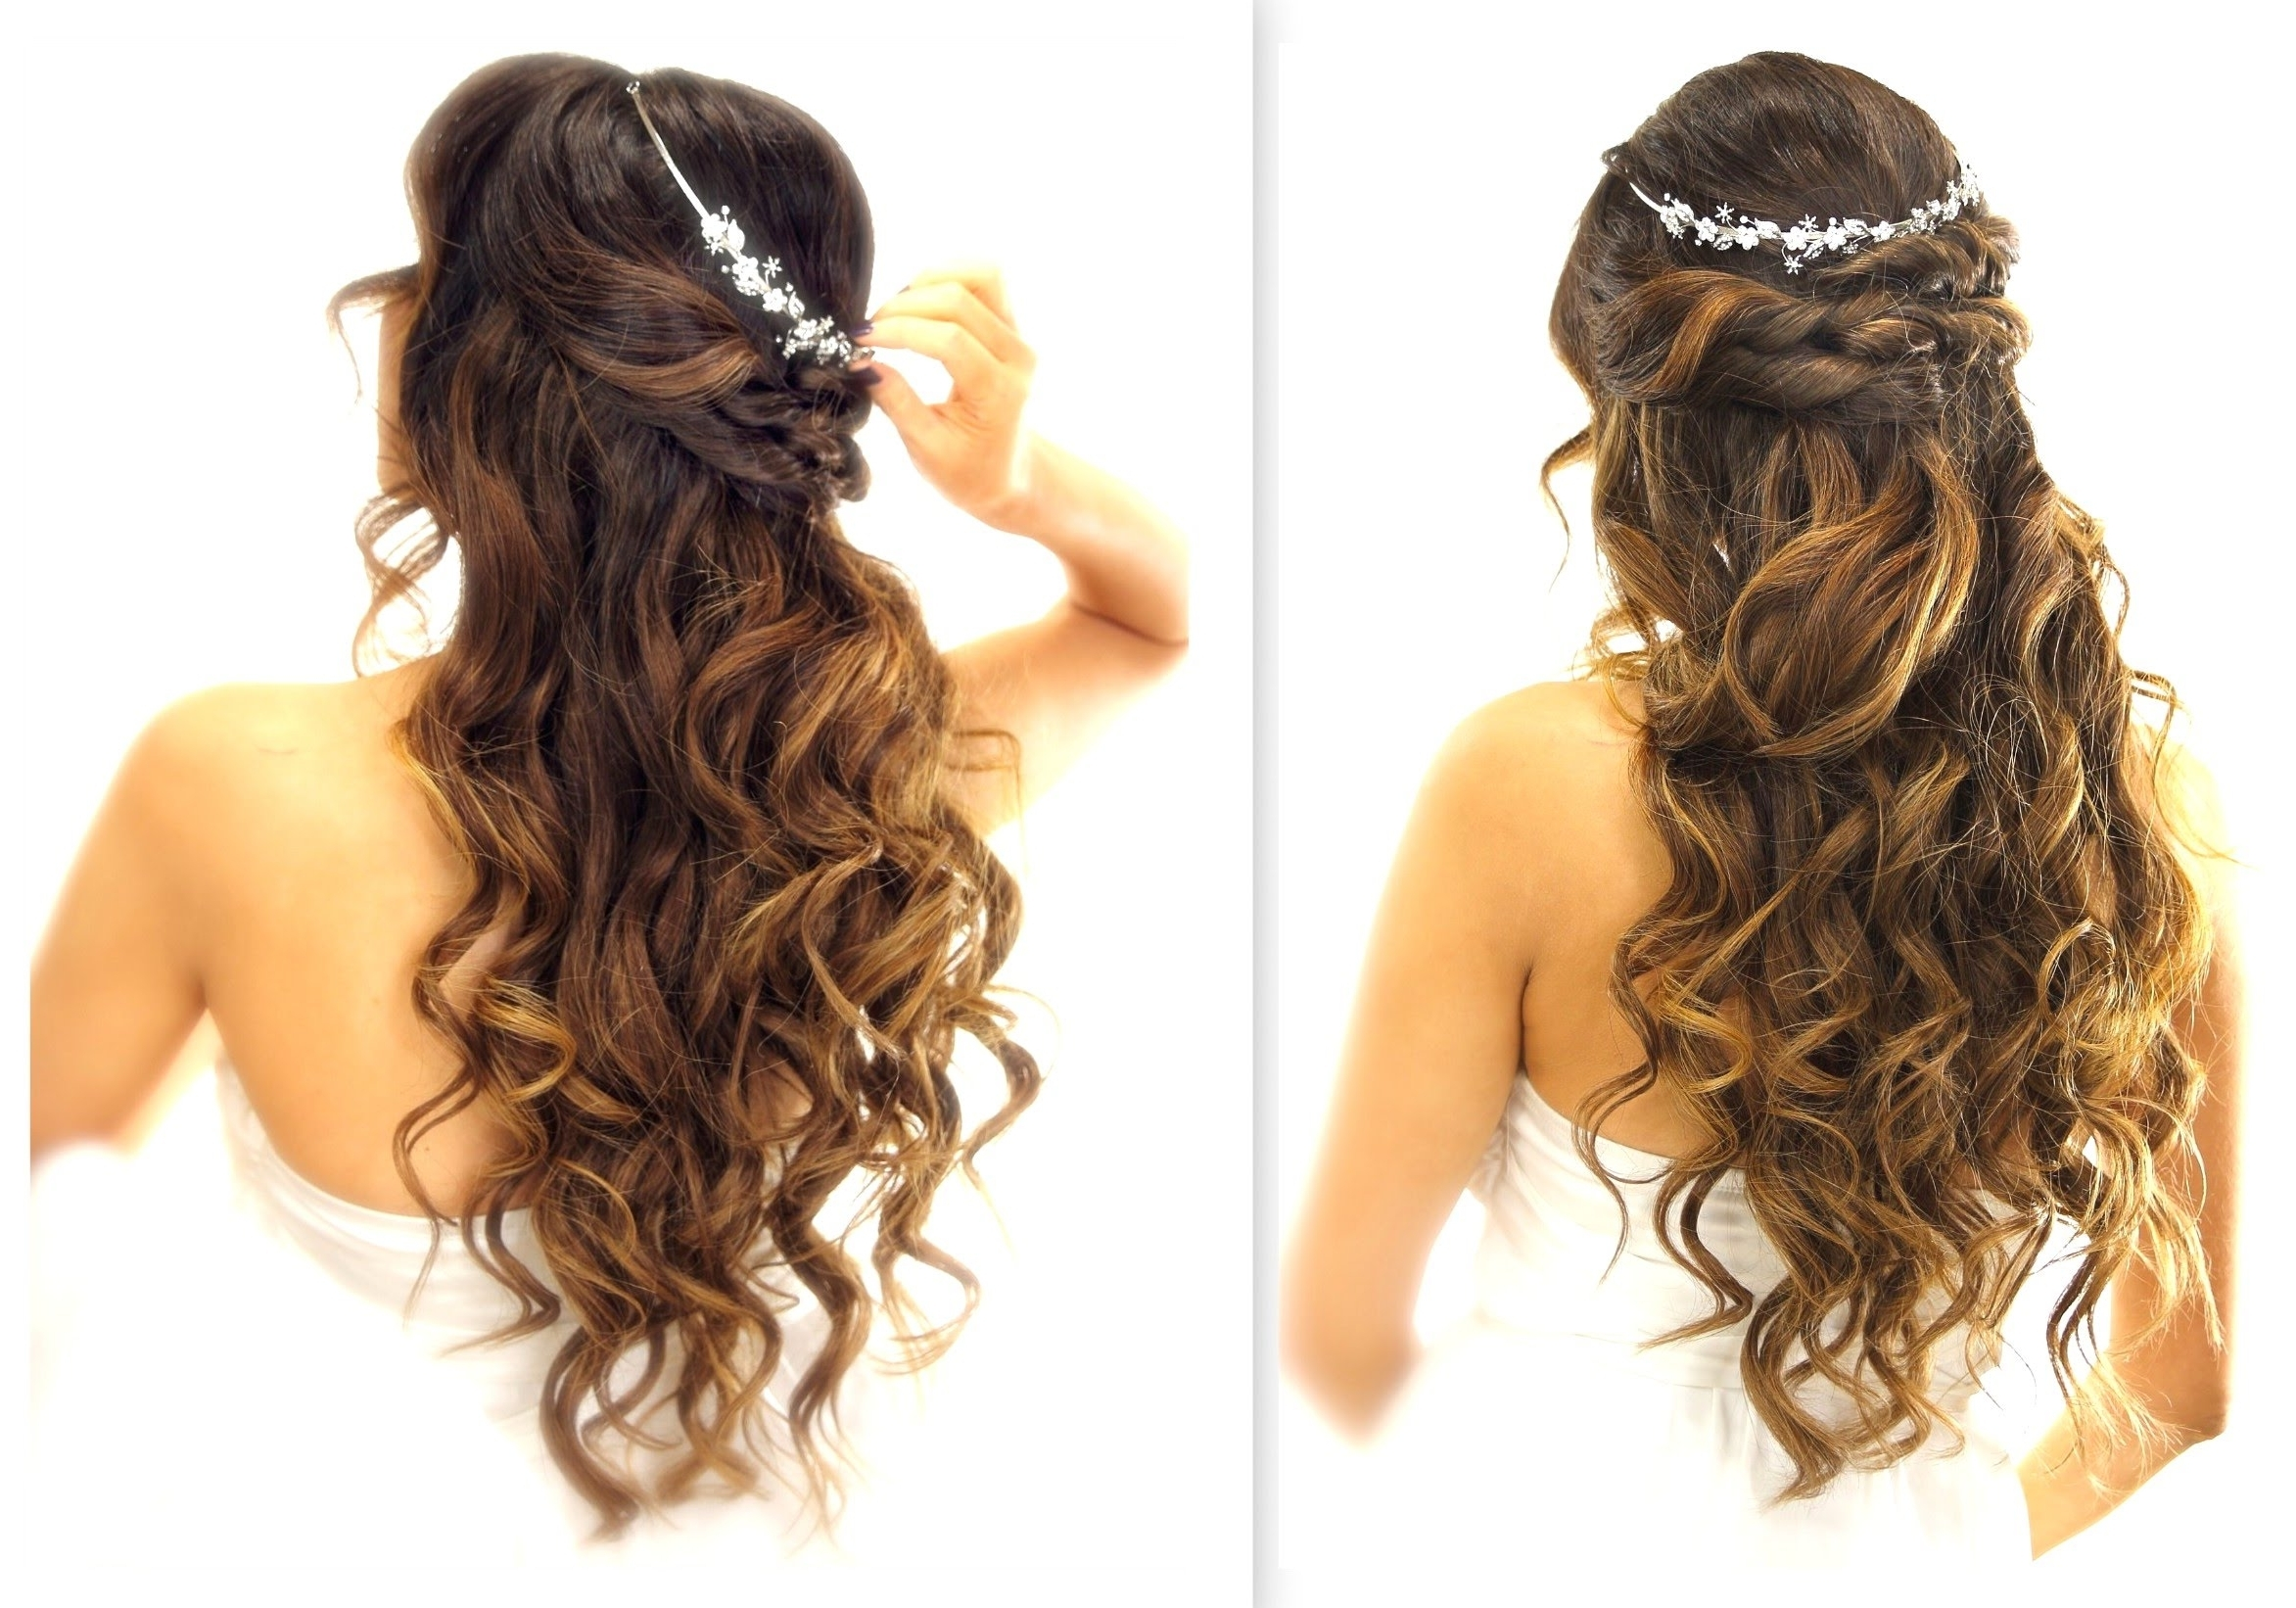 ☆ Easy Wedding Half Updo Hairstyle With Curls | Bridal Hairstyles Inside Half Updo Hairstyles For Medium Hair (View 2 of 15)